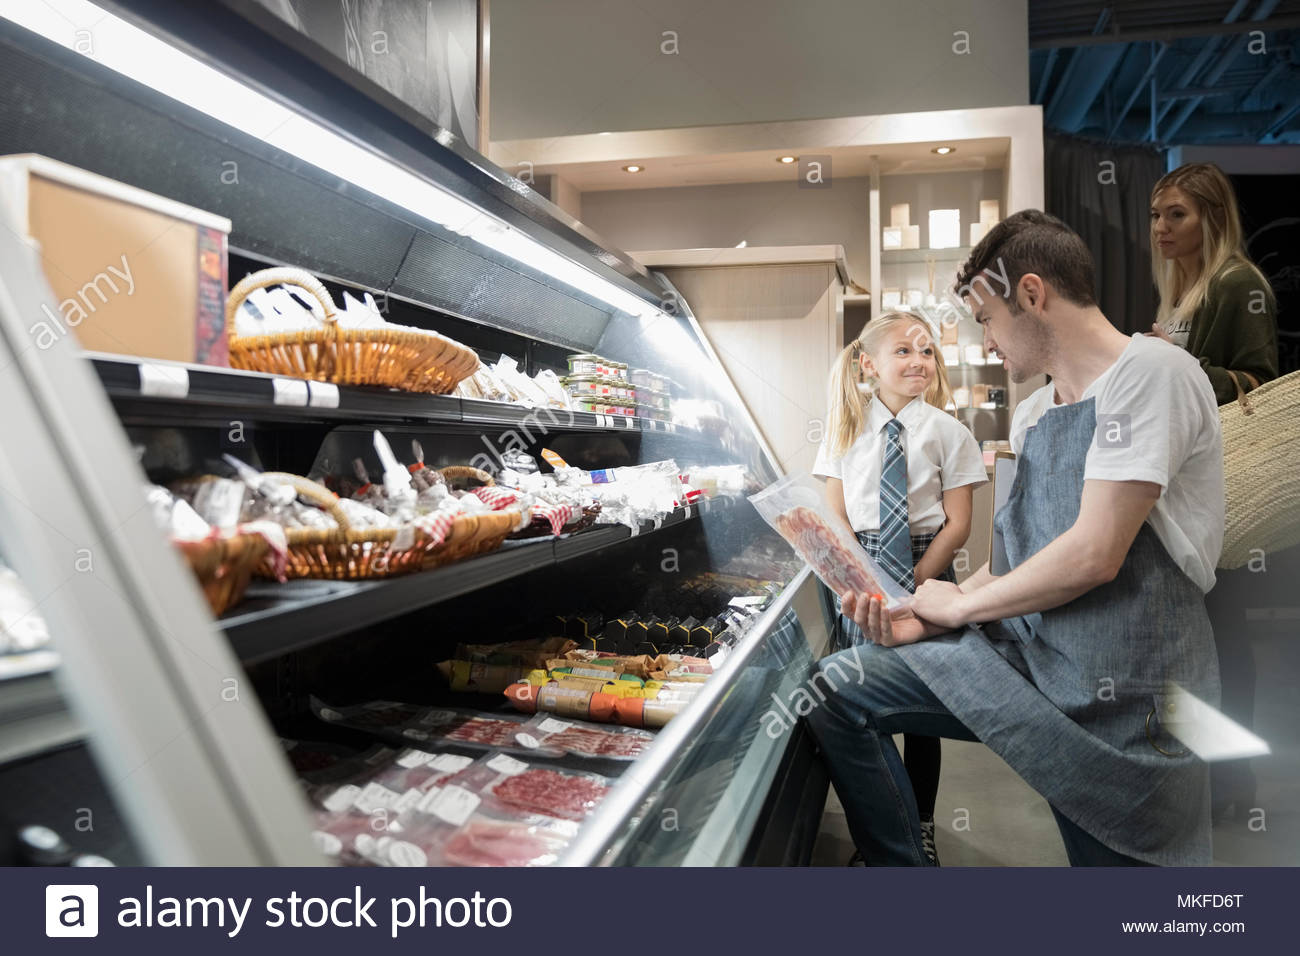 Worker helping mother and daughter grocery shopping in market - Stock Image